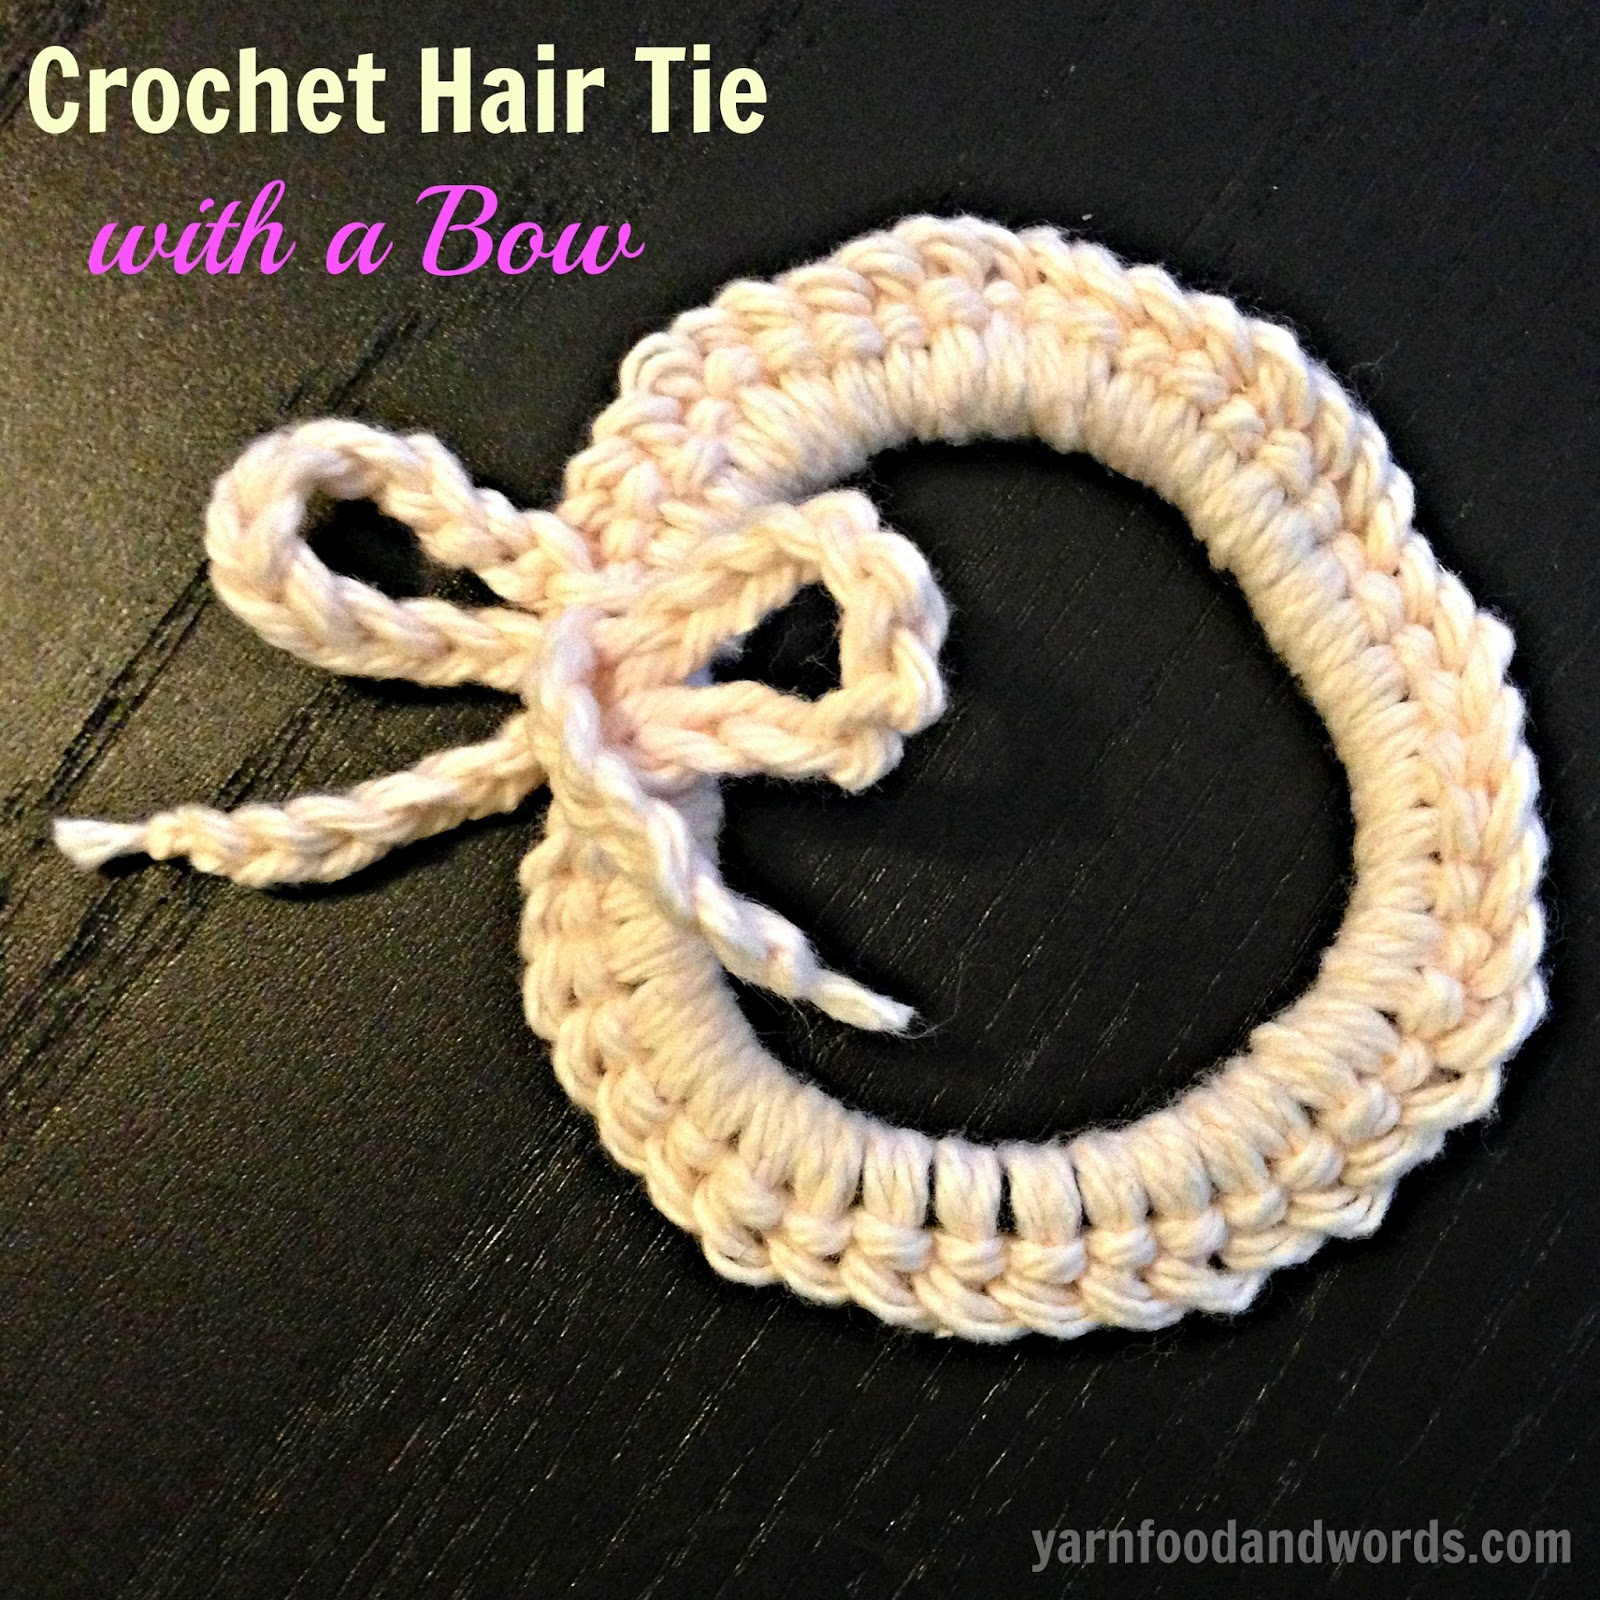 Yarn, Food & Words.: Crochet Hair Tie with a Bow